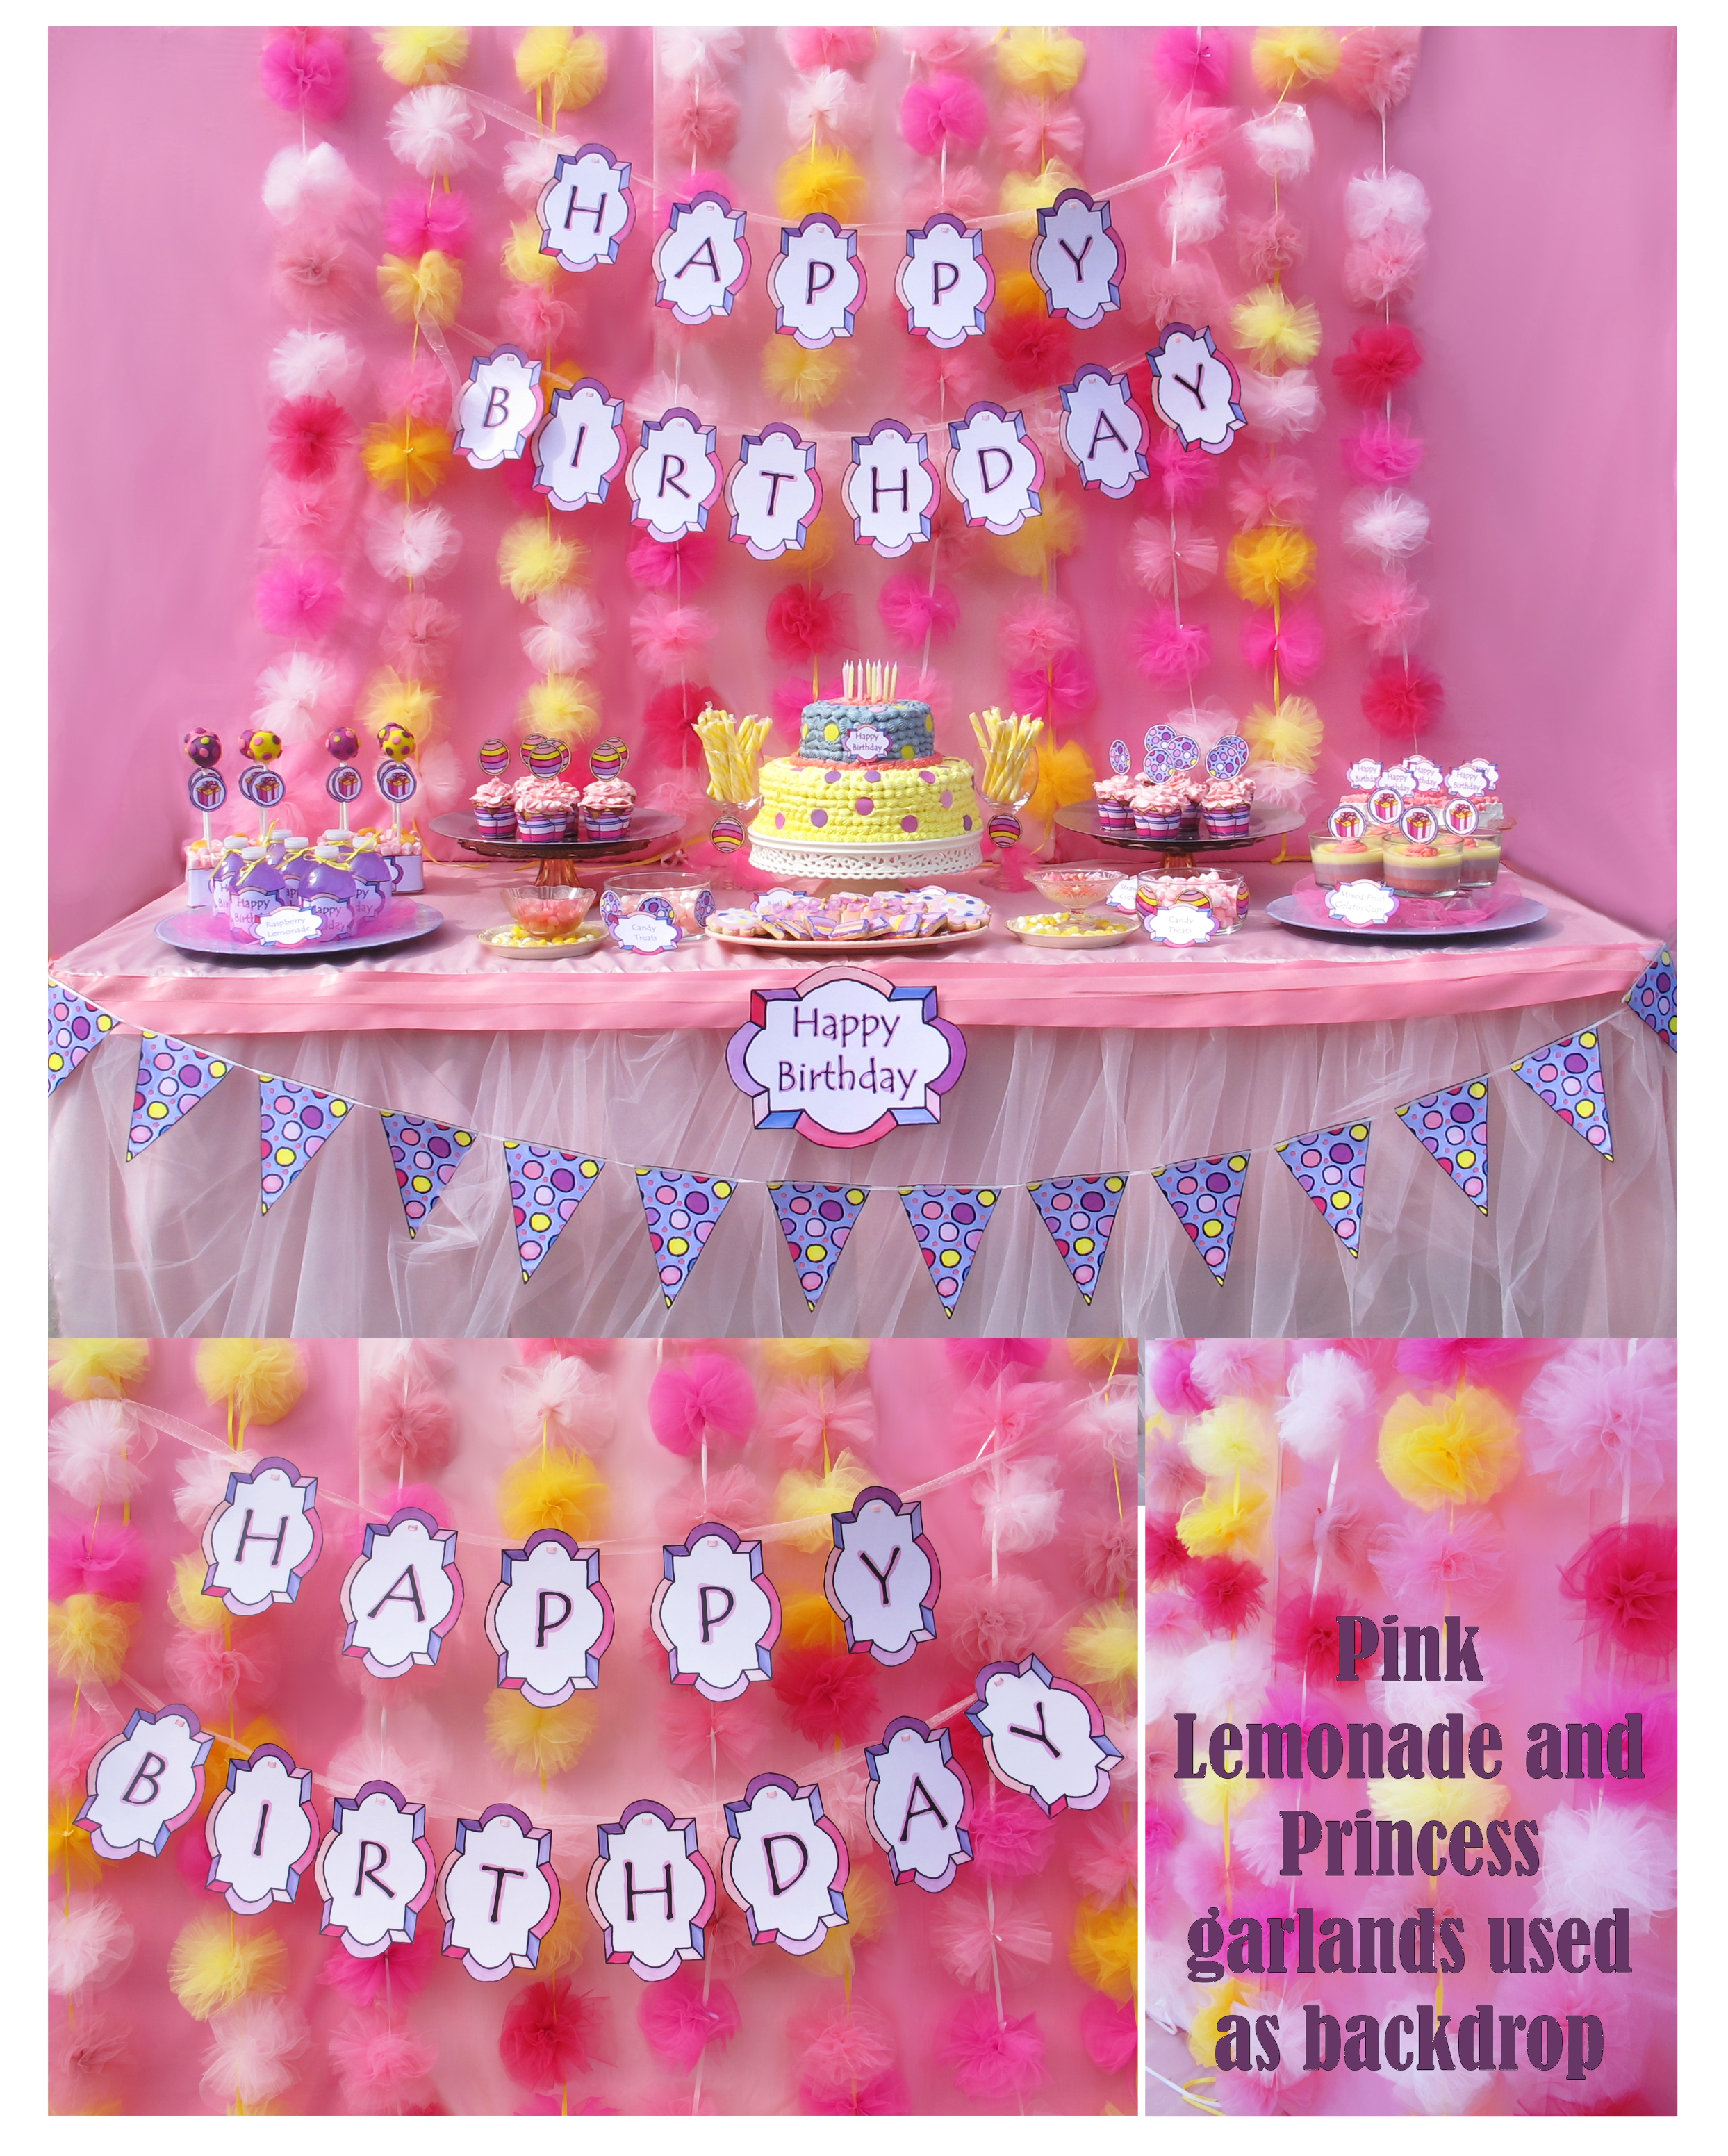 Diy Tulle Pom Pom Garland They Were Featured In Our Valentine S Love Photo Booth Props Shoot Perfect For A Birthday Backdrop The Party Event